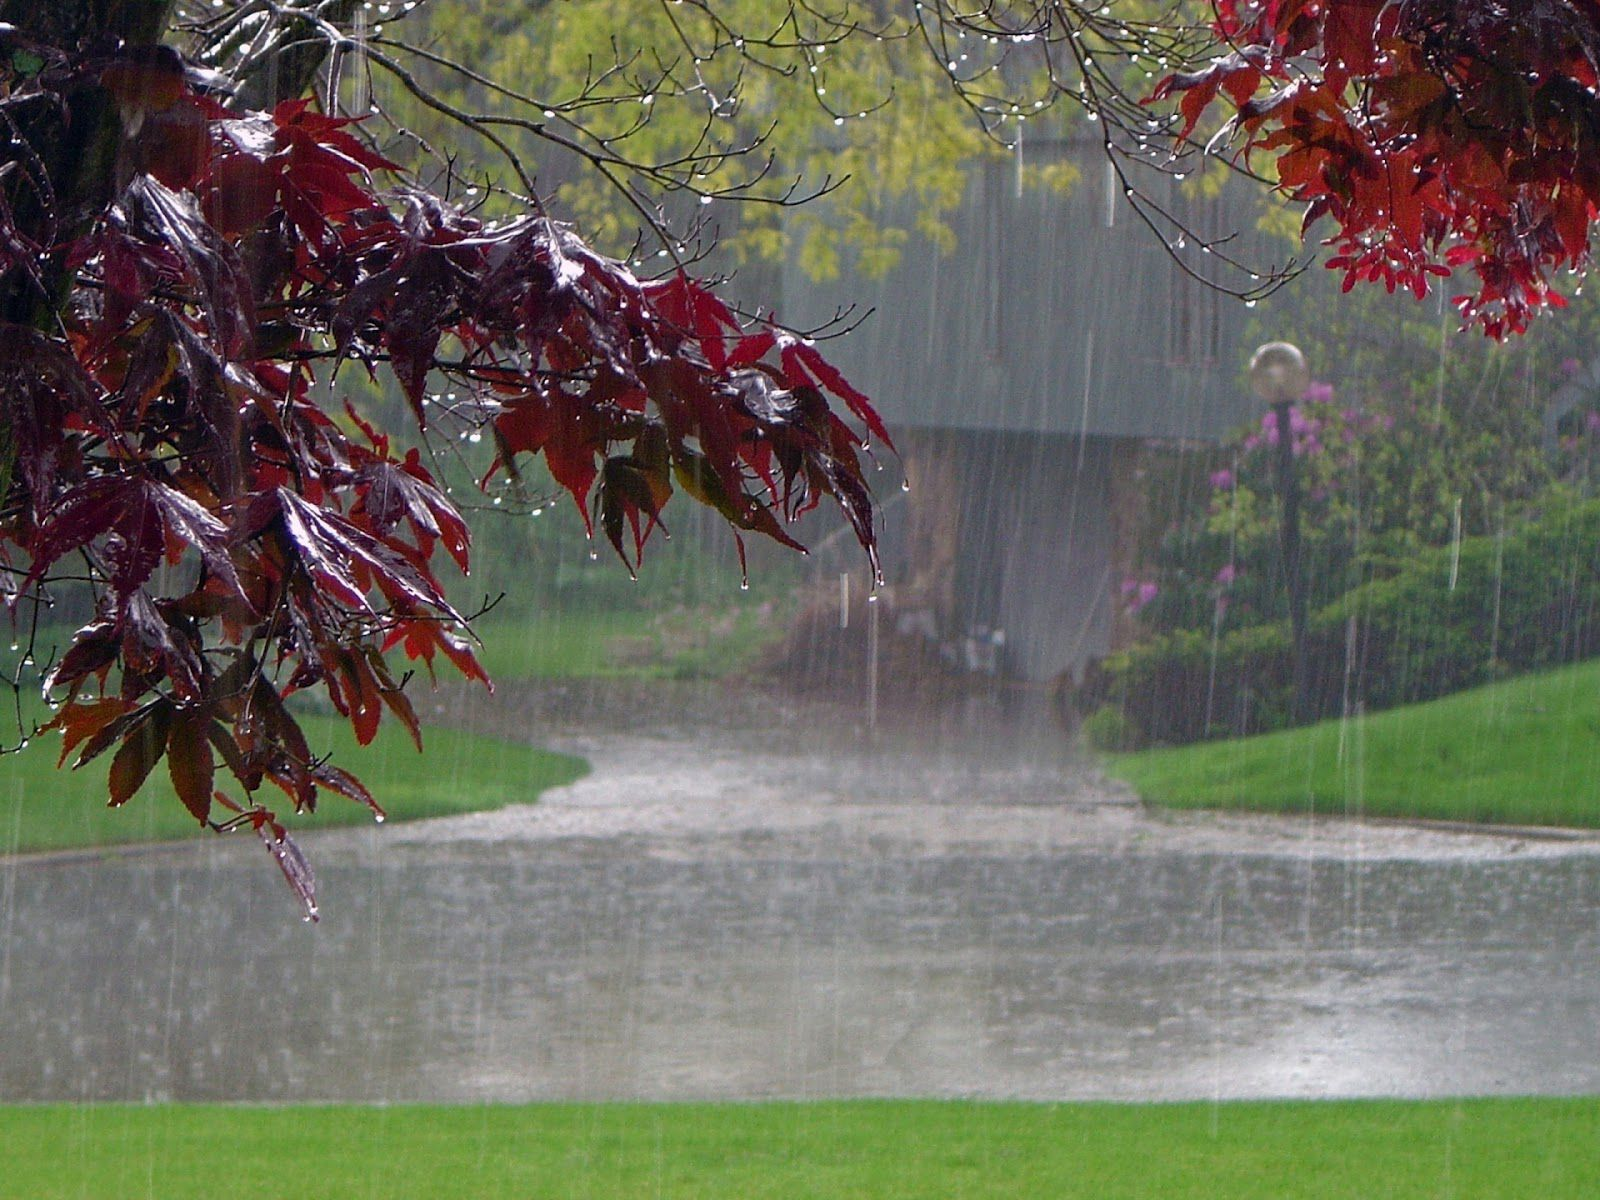 Rainy Nature Wallpapers Rain Wallpapers Nature Wallpaper Rain Pictures